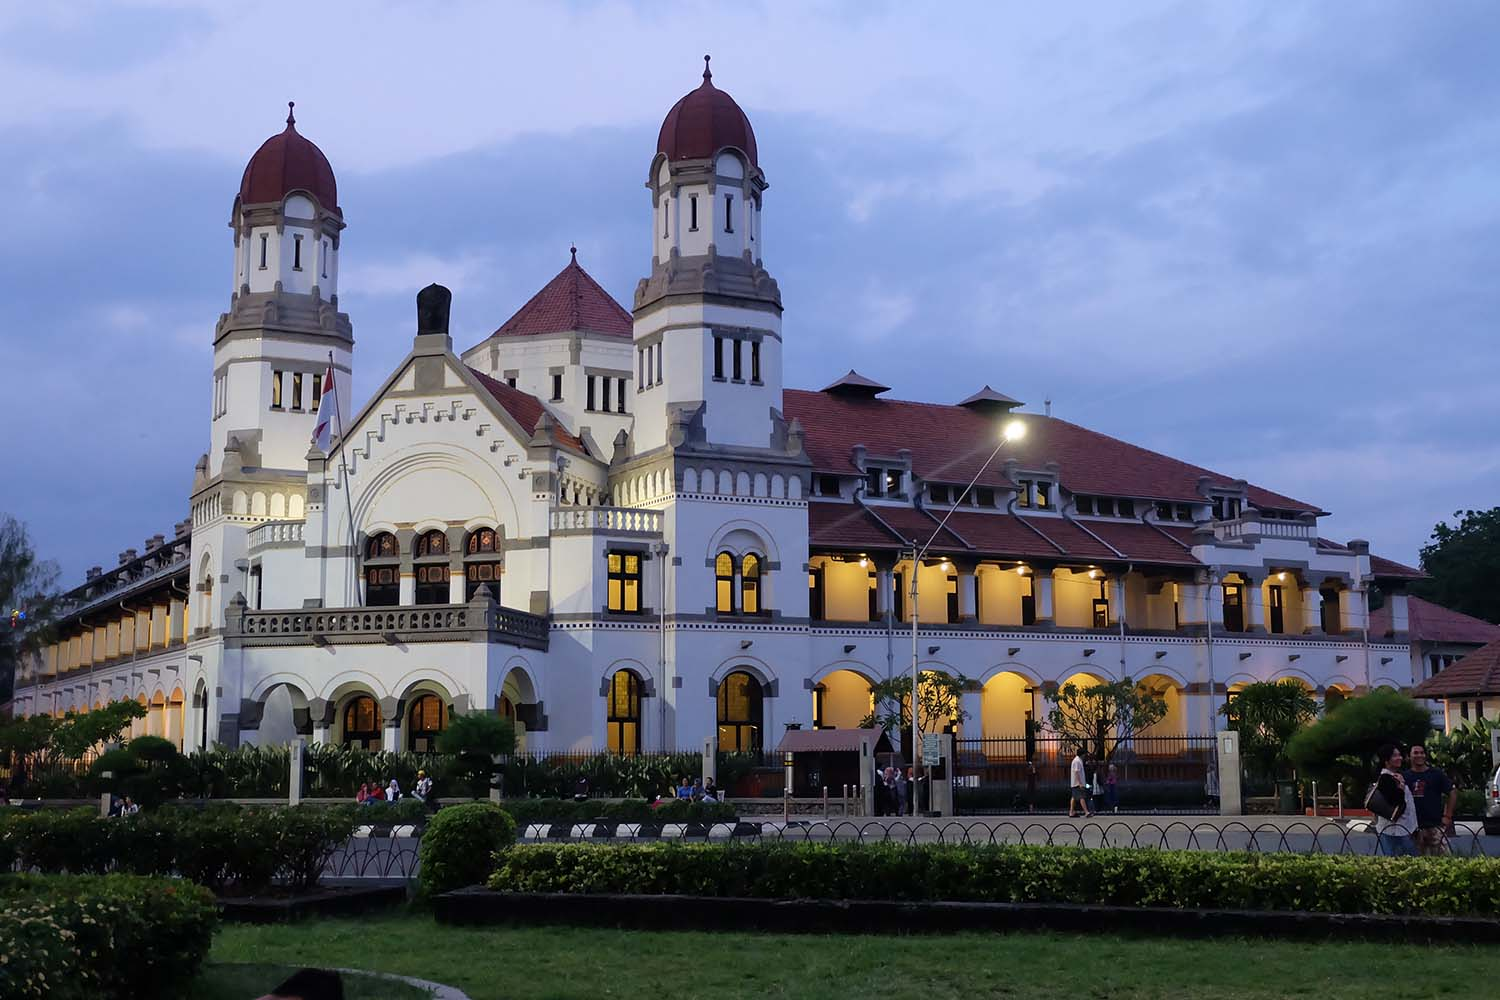 Colonial building at sunset time in Semarang city, Central Java, Indonesia.